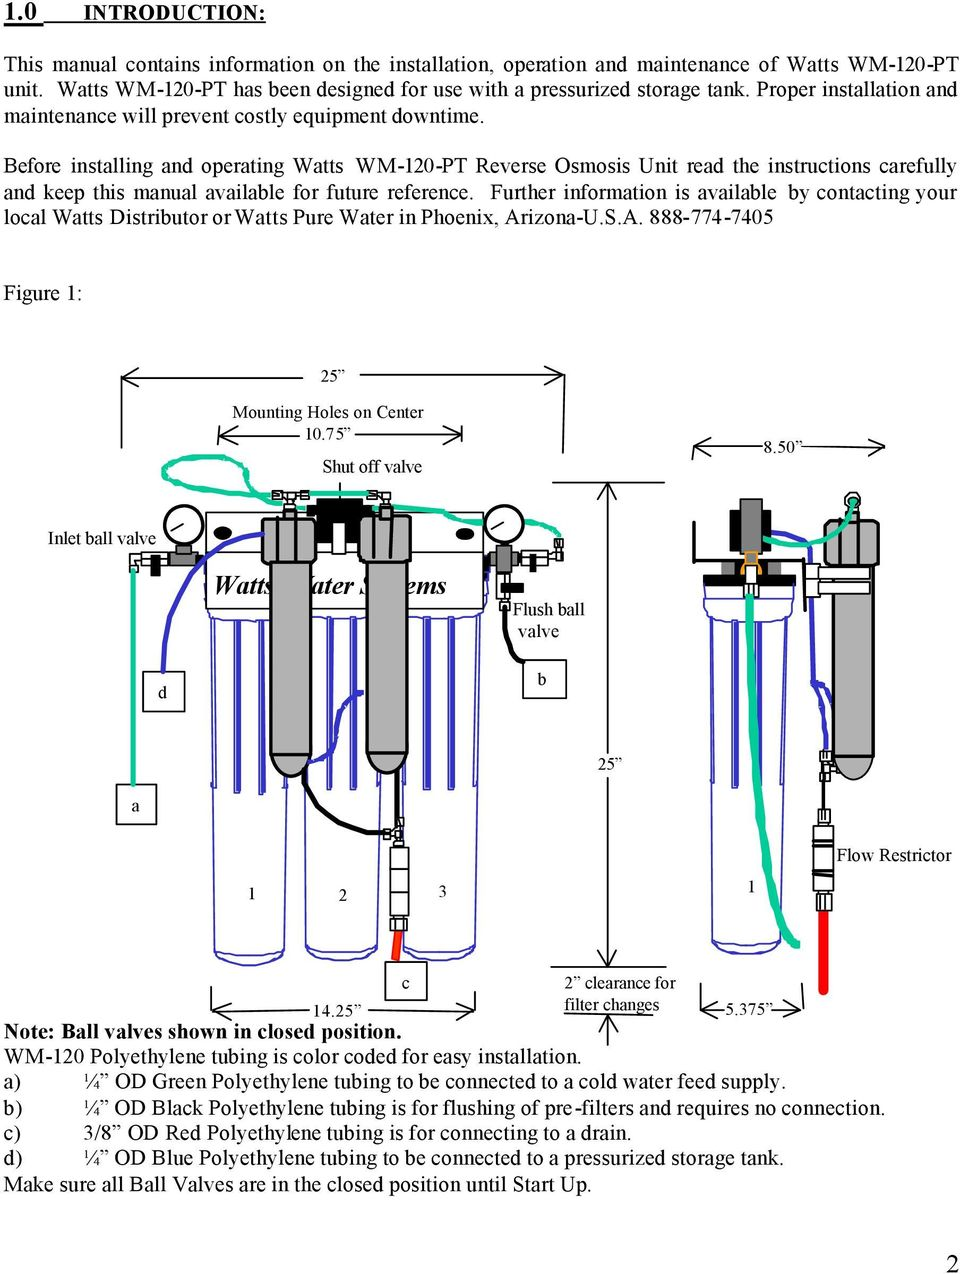 Before installing and operating Watts WM-120-PT Reverse Osmosis Unit read the instructions carefully and keep this manual available for future reference.